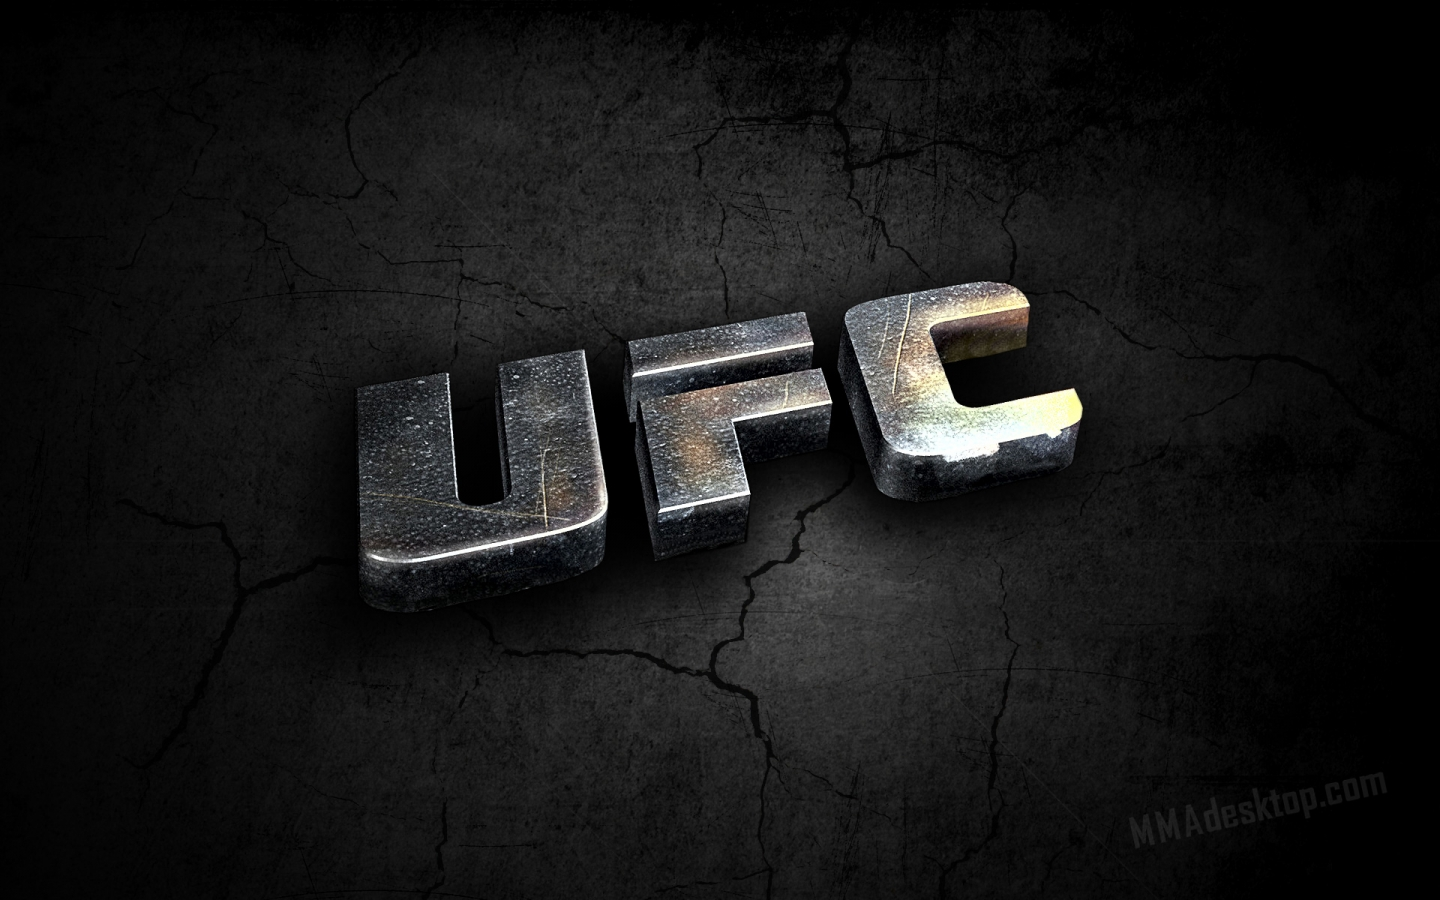 Sports - MMA Mma Mixed Martial Arts Ultimate Fighting Championship Fighting Championship Wallpaper